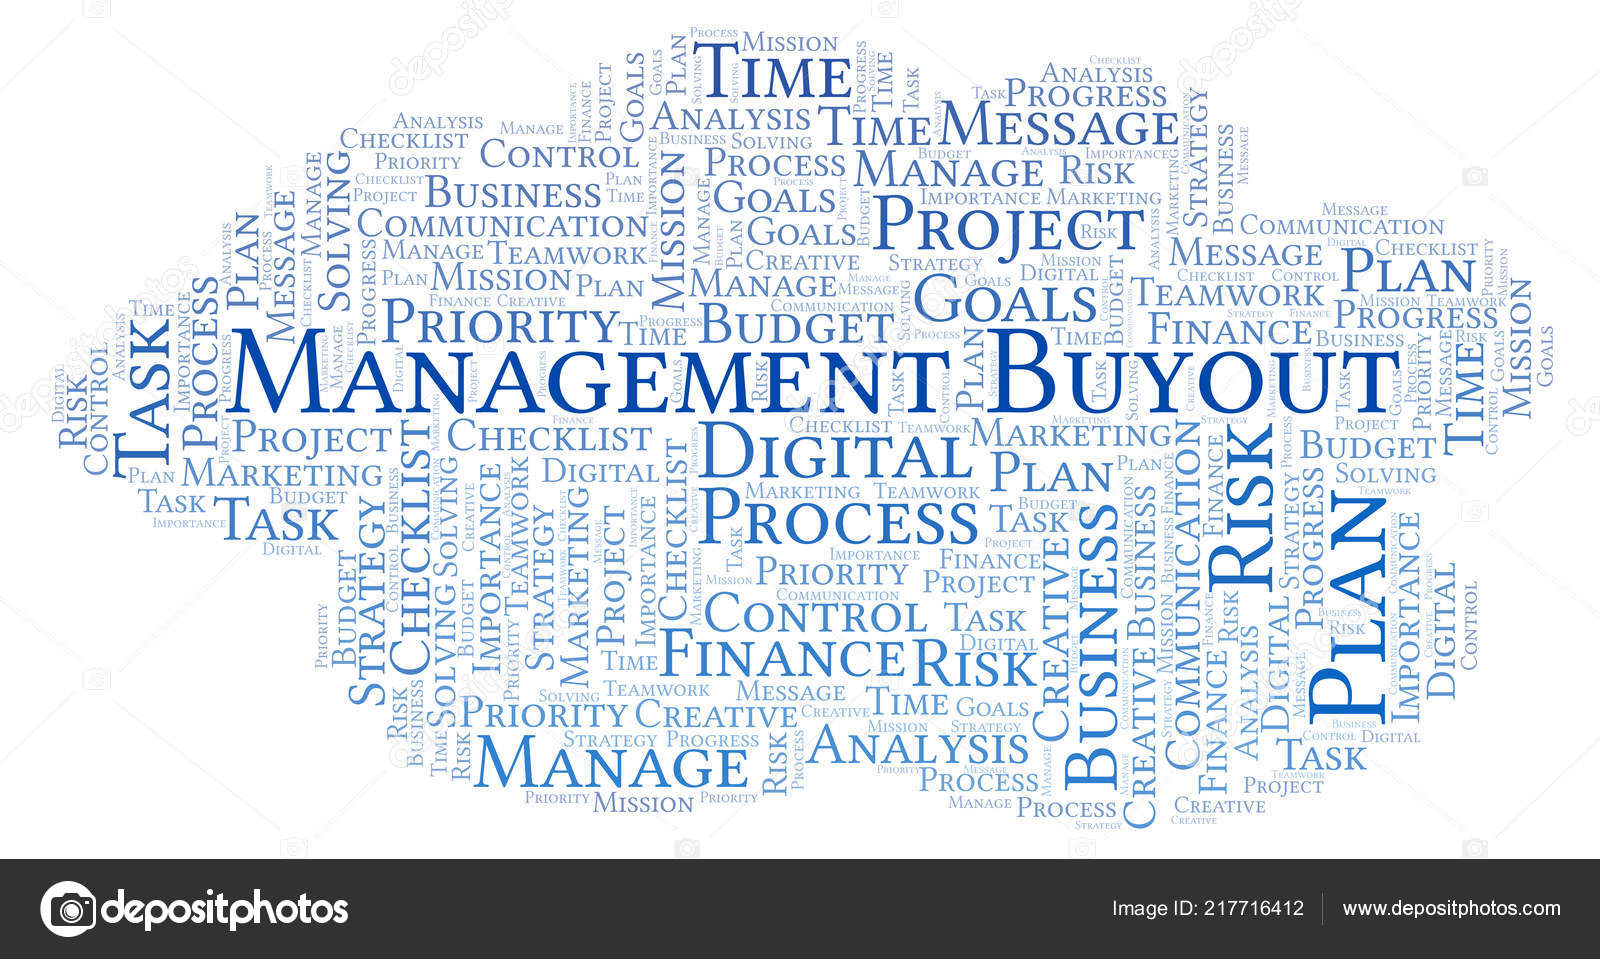 Management Buyout Word Cloud Made Text Only  Stock Photo  Management Buyout Word Cloud Made Text Only  Stock Photo